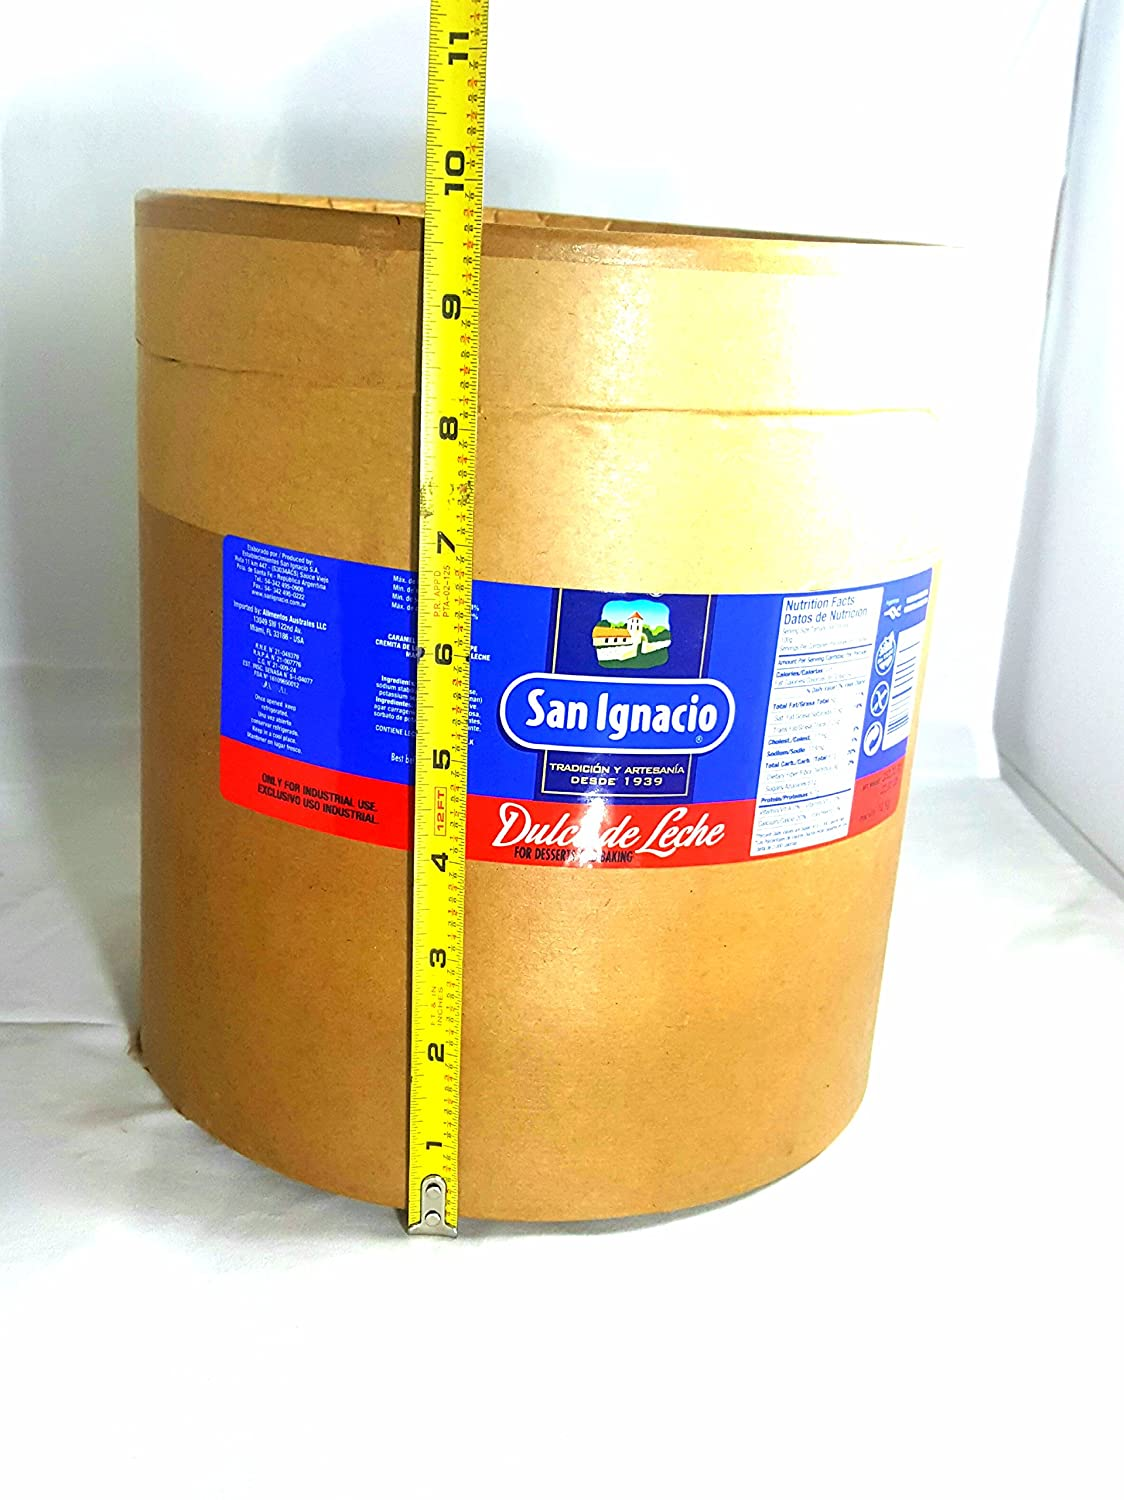 Amazon.com : Dulce de Leche Repostero 10 Kilo Grams : Grocery & Gourmet Food